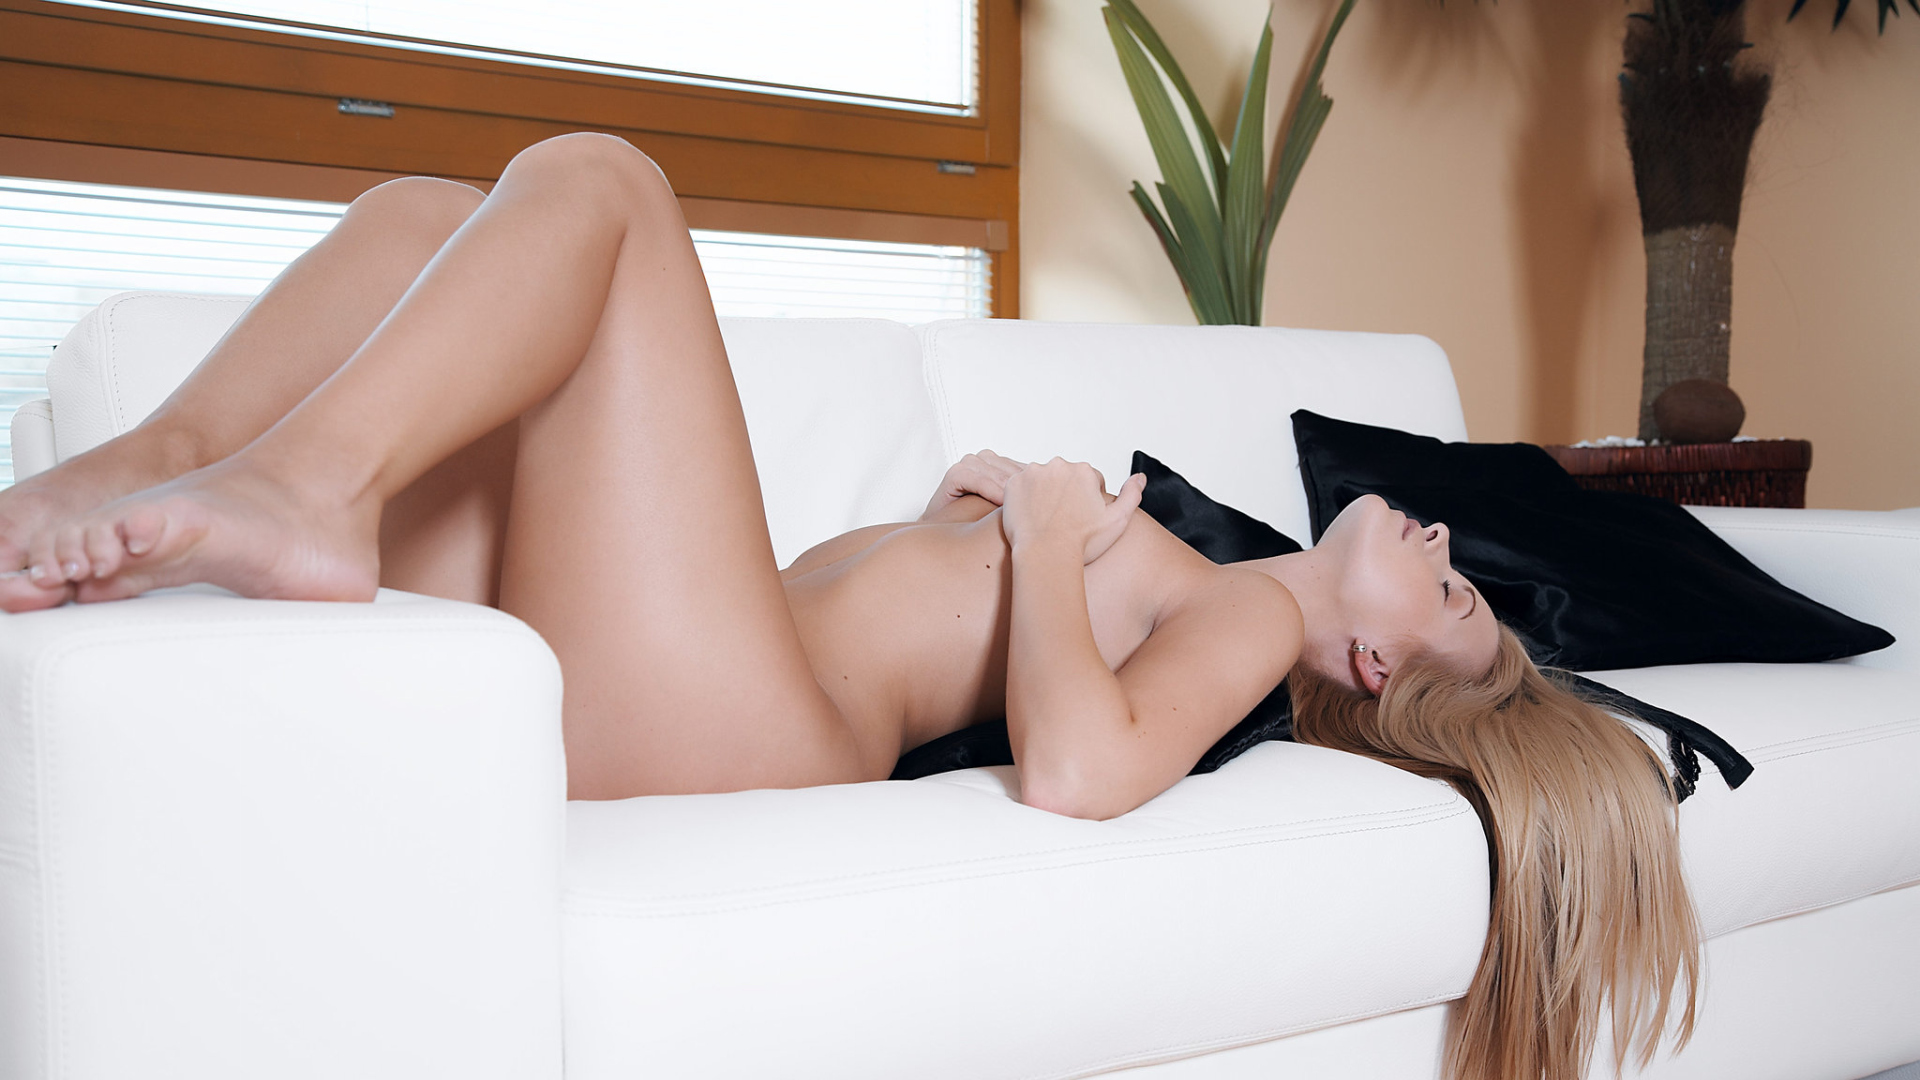 Mona choi and naked asian women